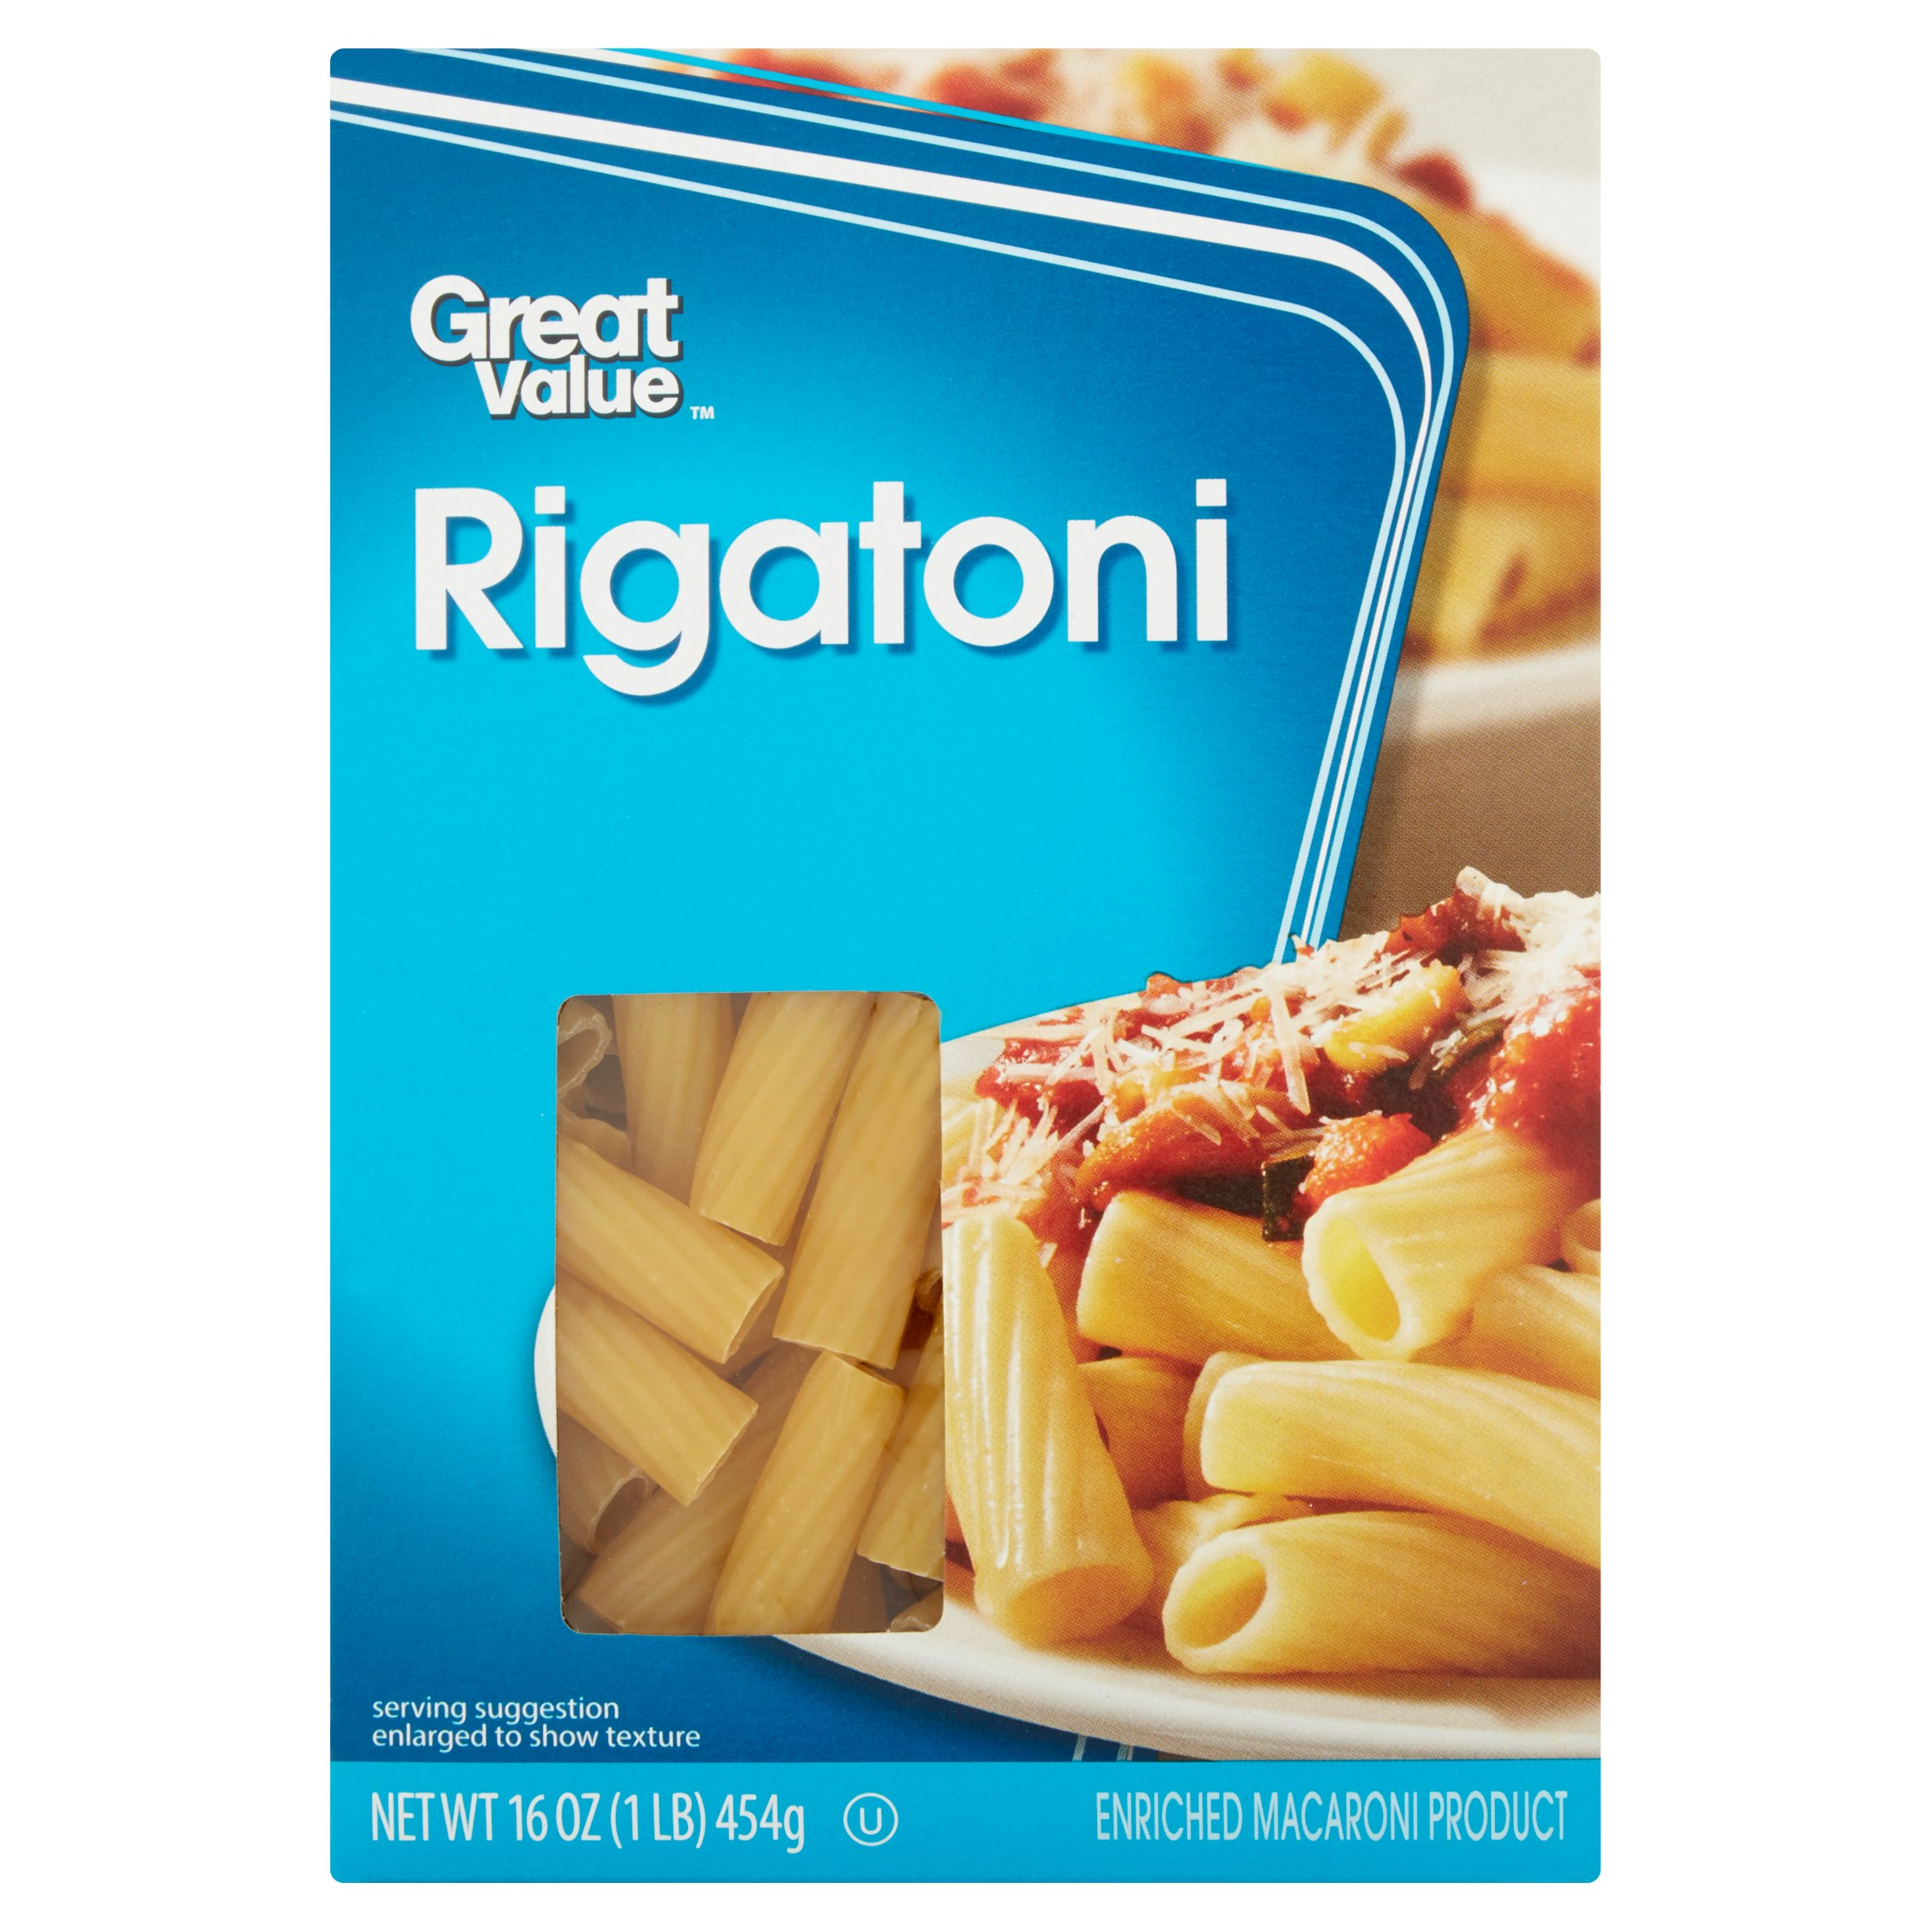 Great Value Rigatoni, 16 oz